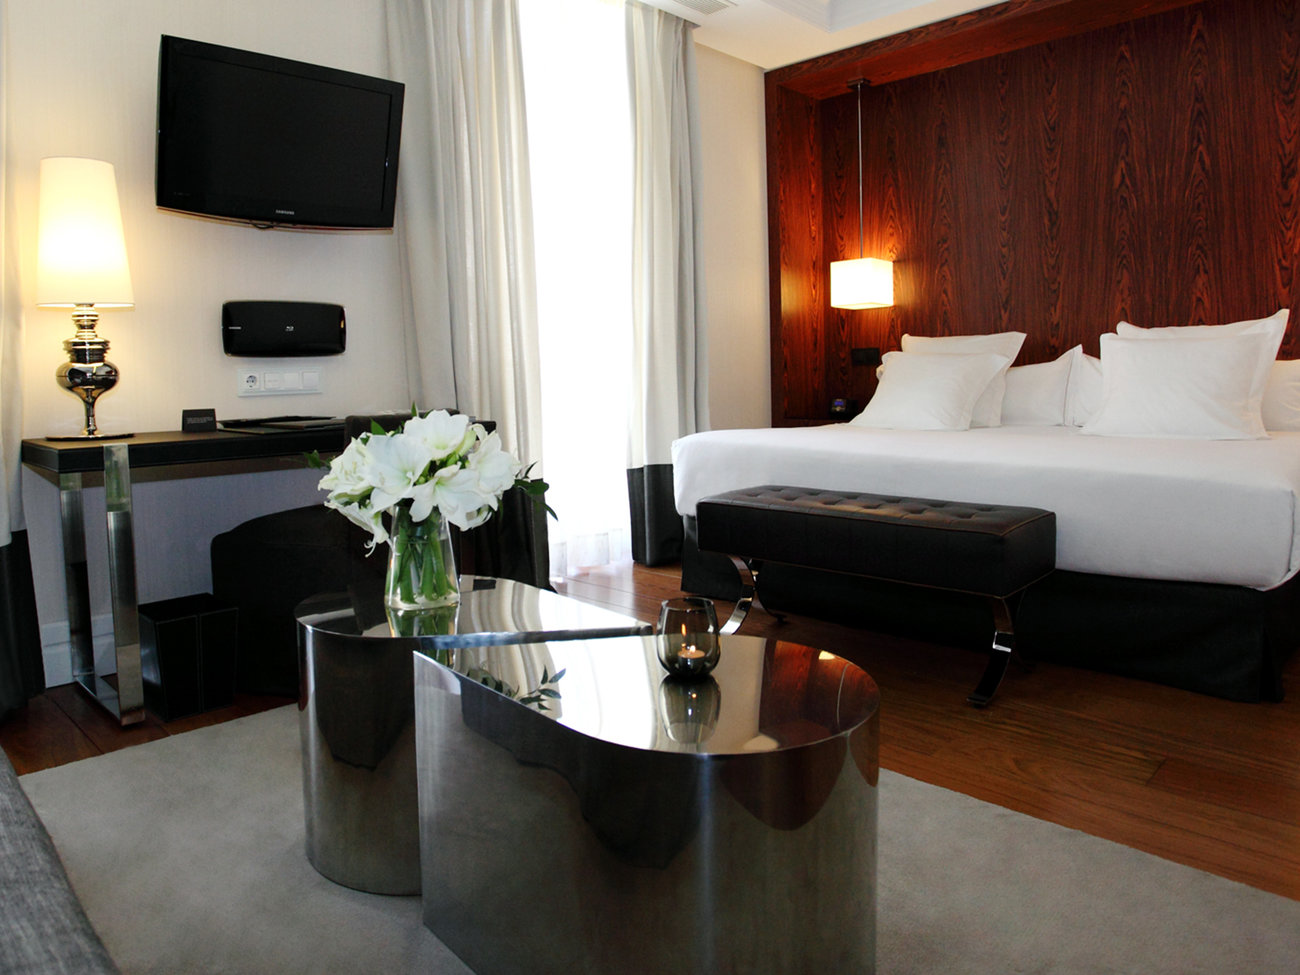 Hotel Unico in Madrid